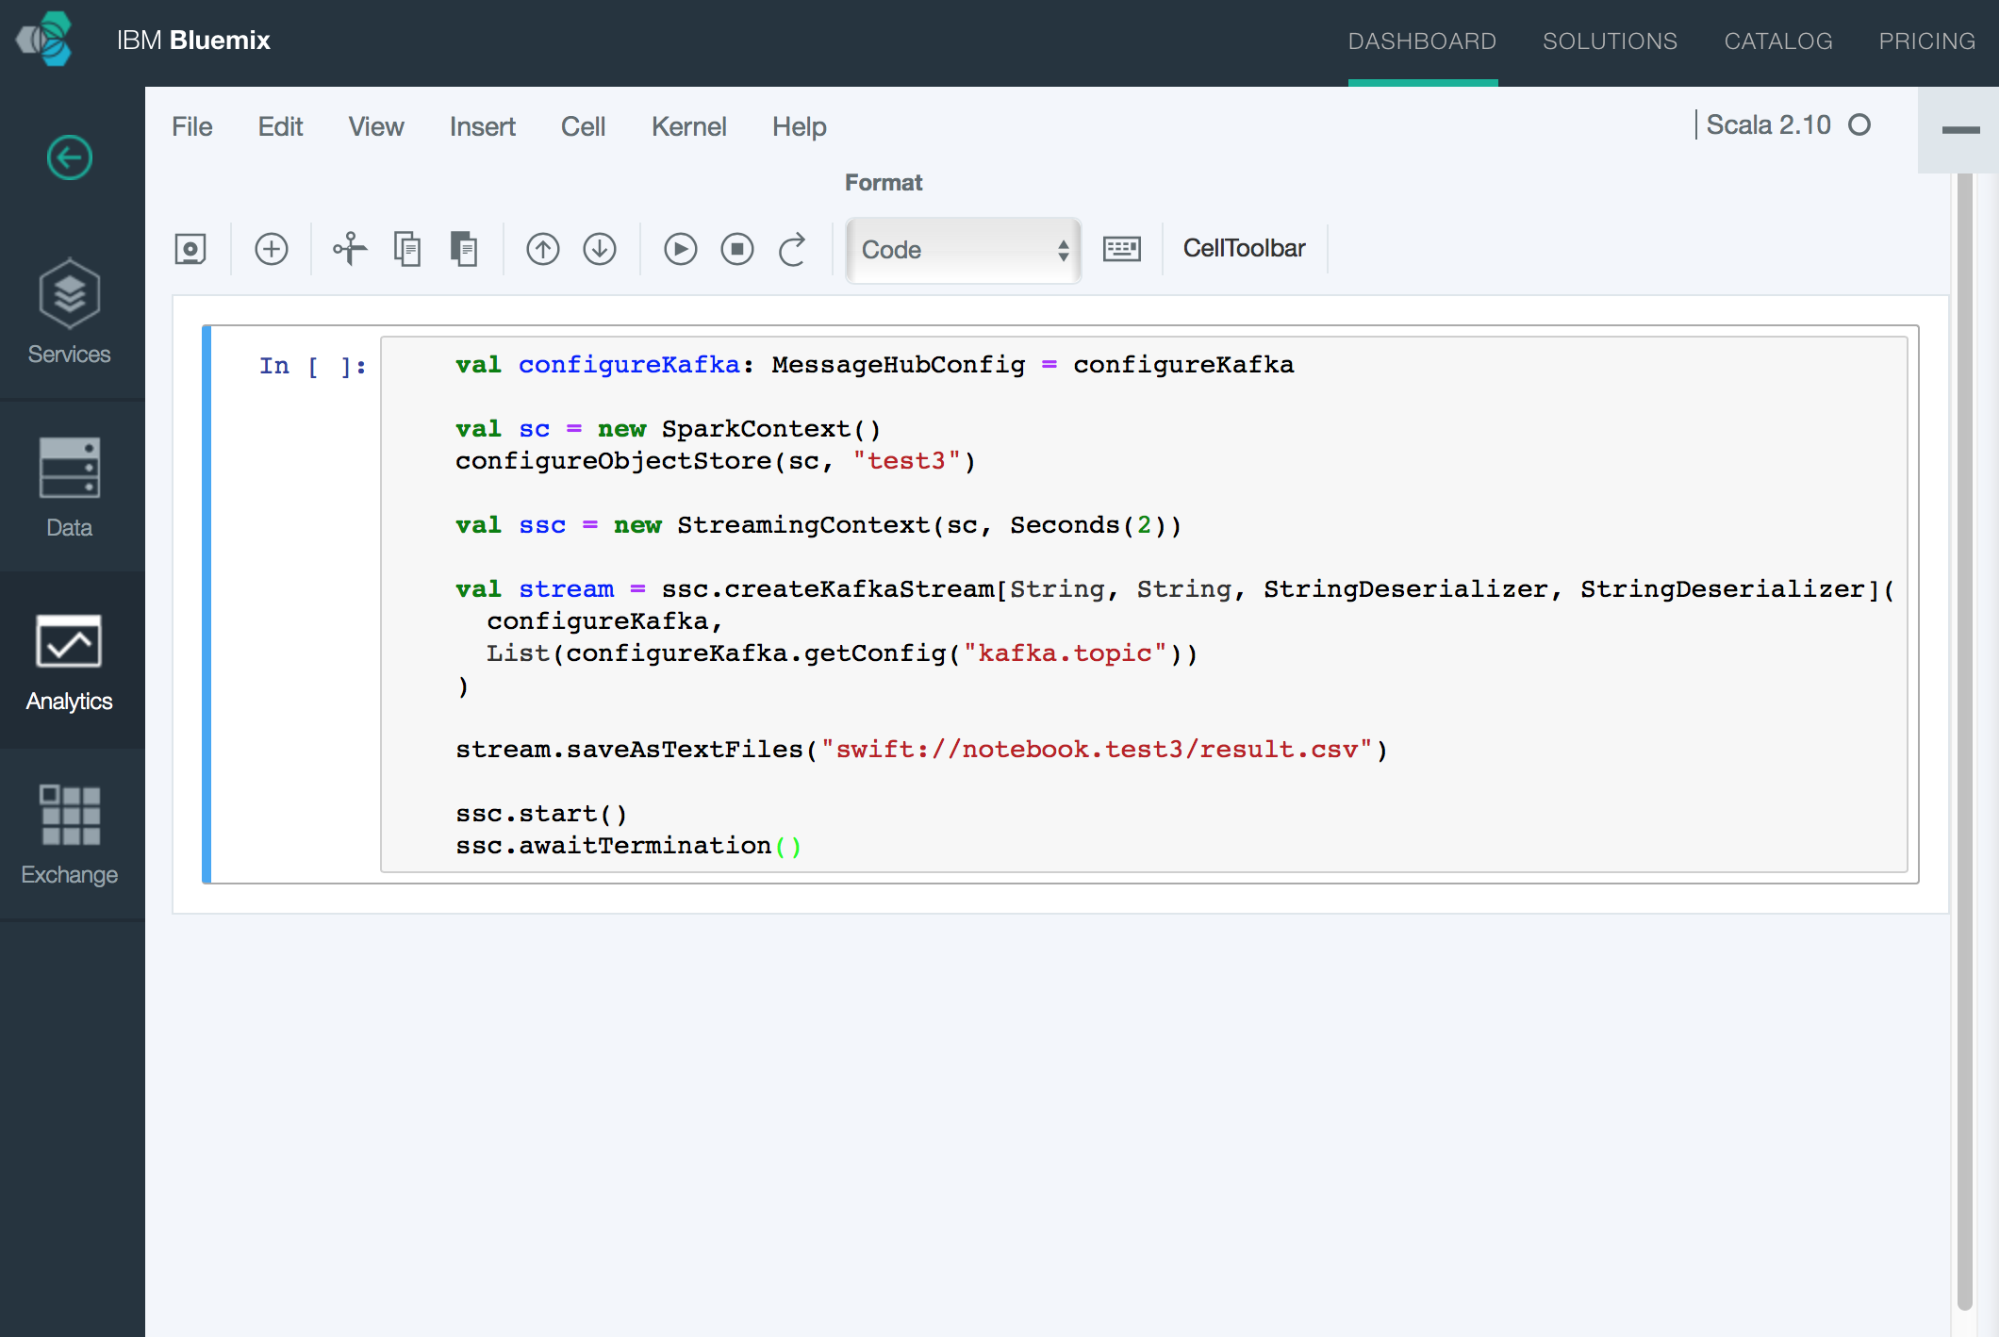 apache-spark-on-ibm-bluemix-jupyter